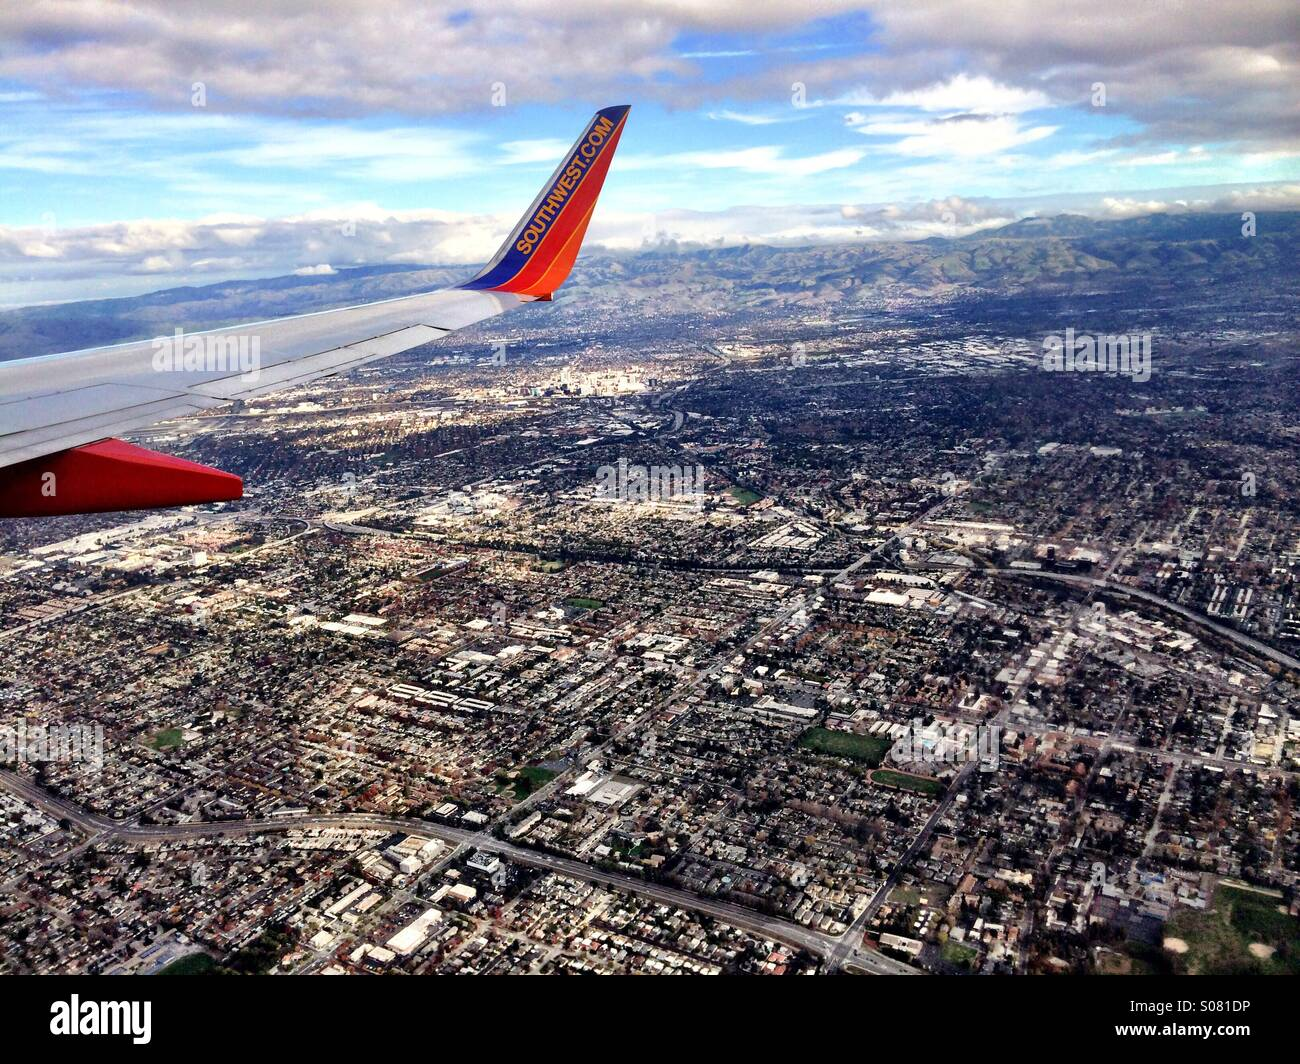 Southwest Airline Stock Photos Amp Southwest Airline Stock